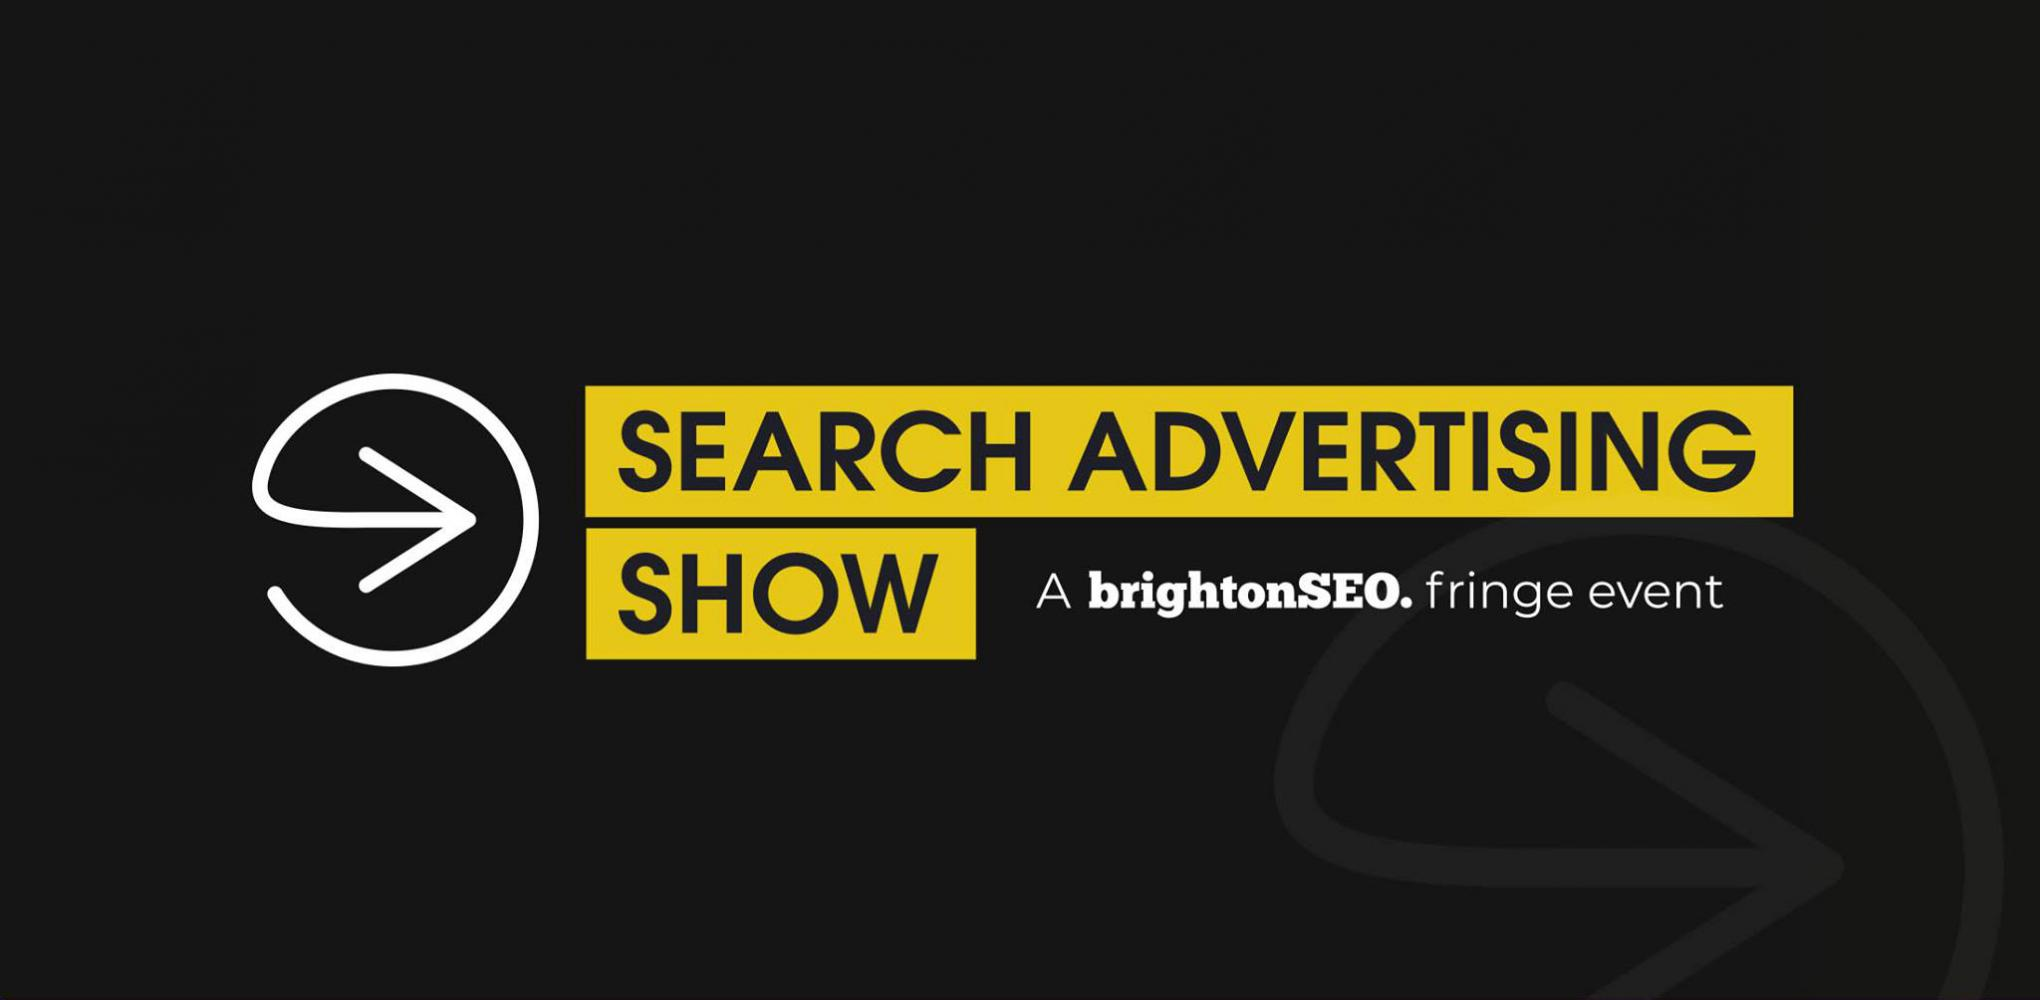 Search Advertising Show in Brighton